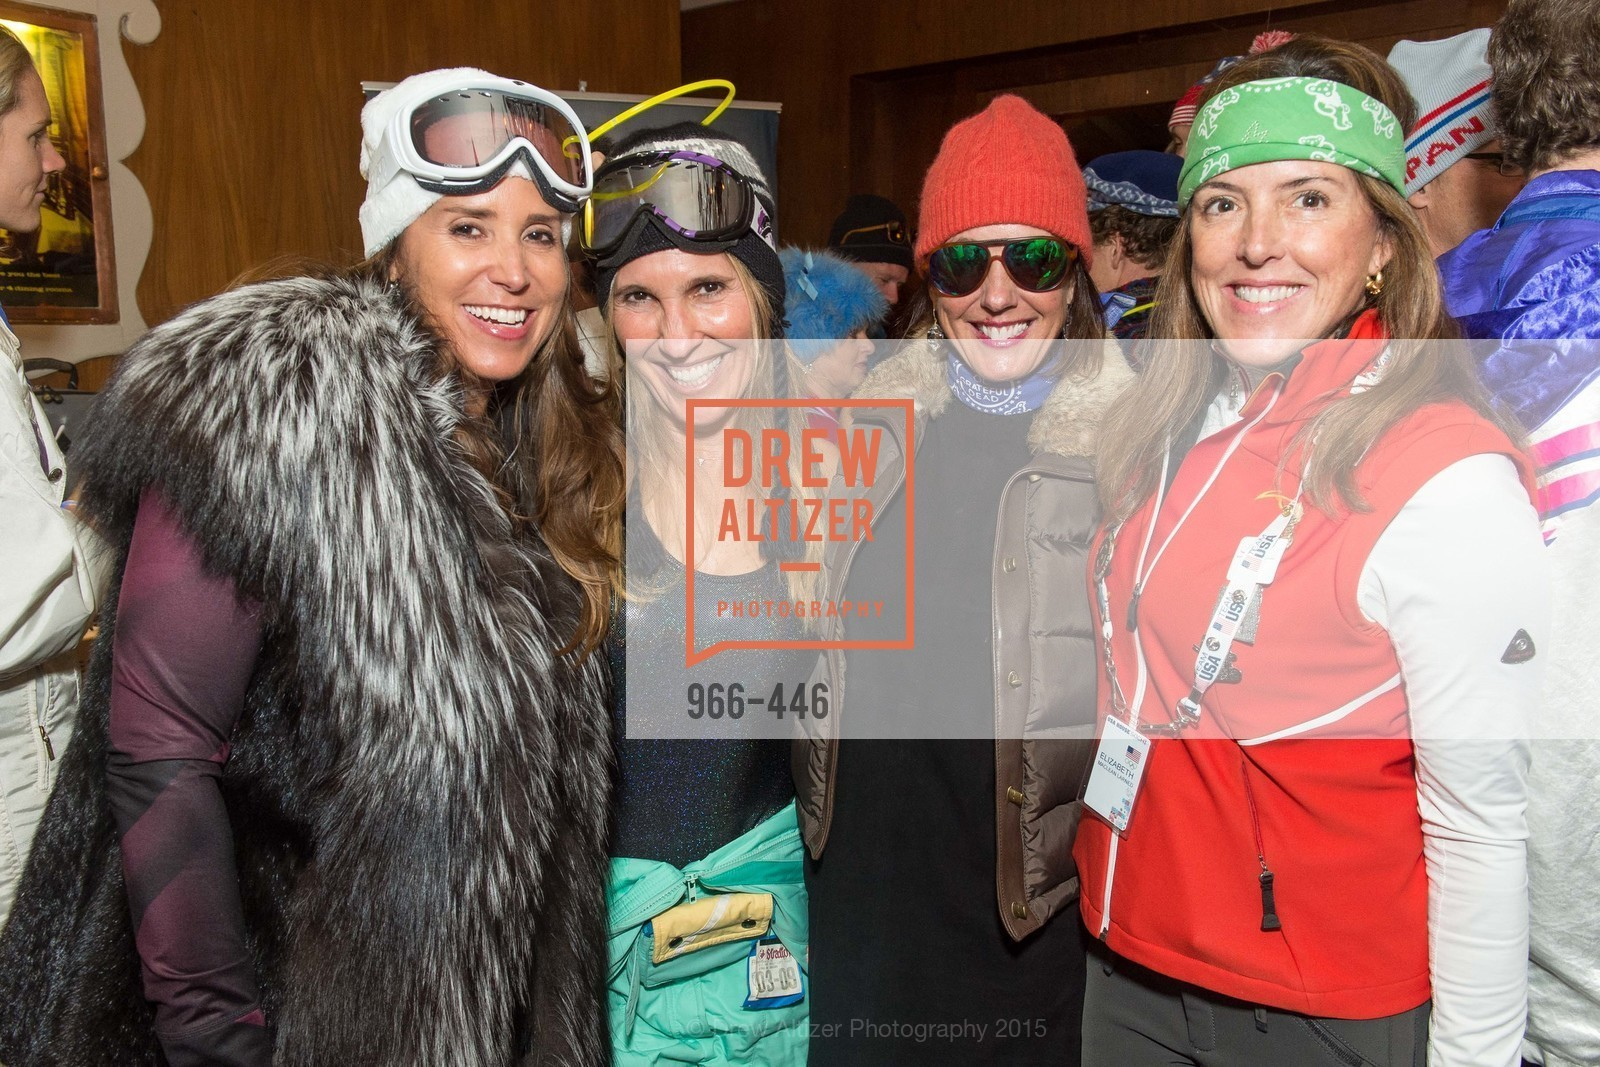 Danielle Boutros, Karen Block, Marybess Willard, Liz Larned, U.S. Ski and Snowboard Foundation's Snow Ball, Bimbo's 365 Club. 1025 Columbus Ave, November 7th, 2015,Drew Altizer, Drew Altizer Photography, full-service agency, private events, San Francisco photographer, photographer california